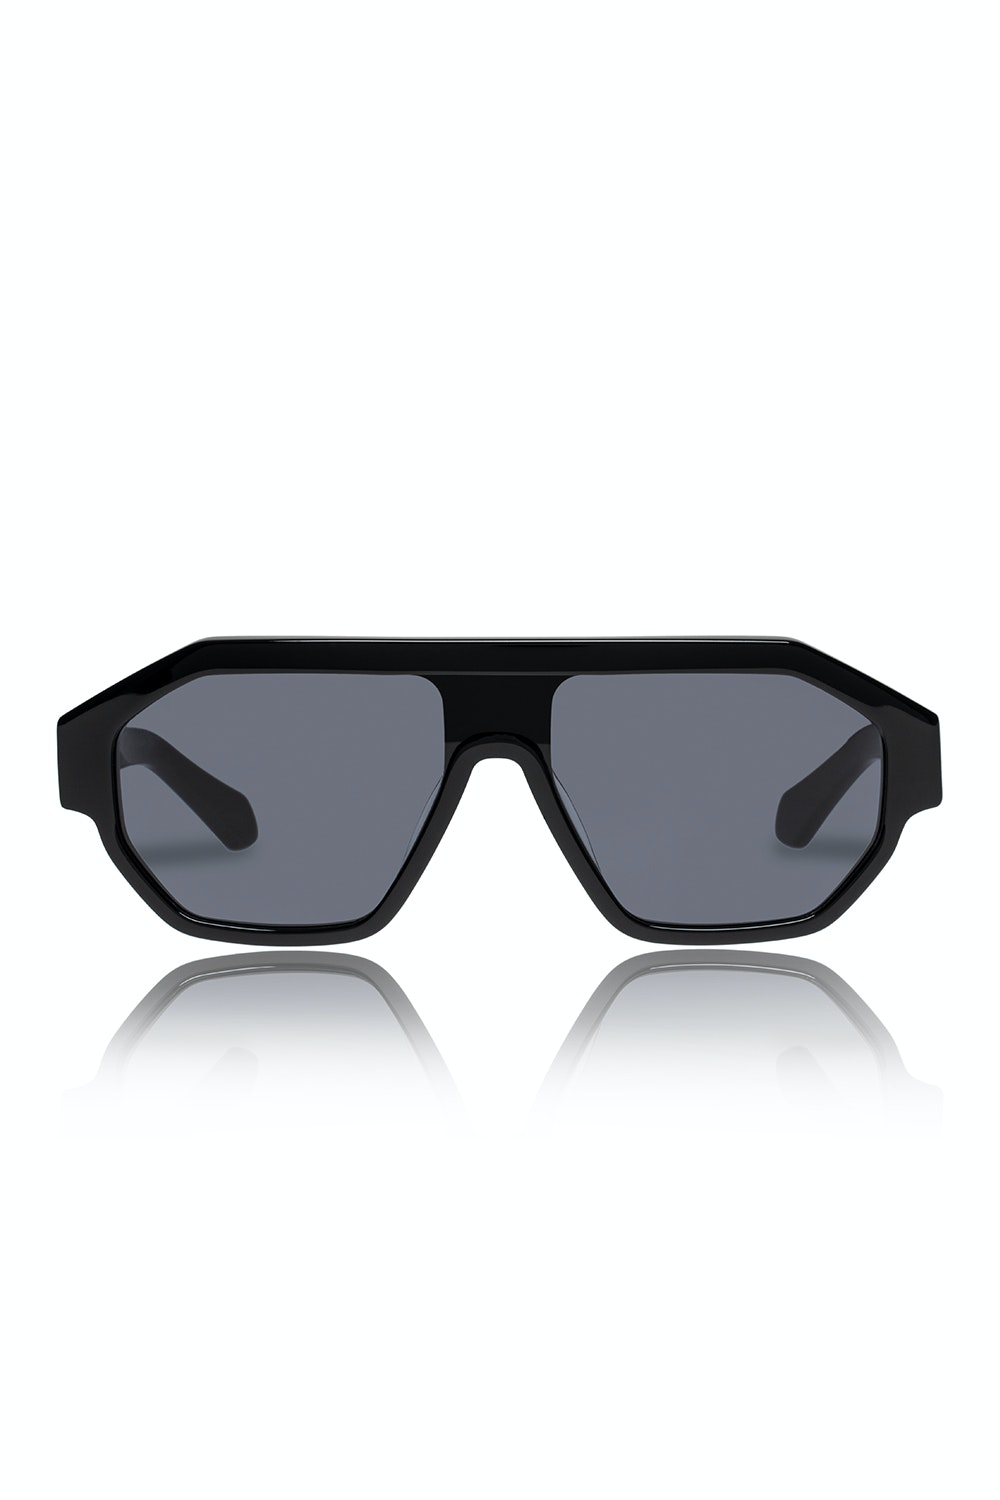 Karen Walker Tribon Black